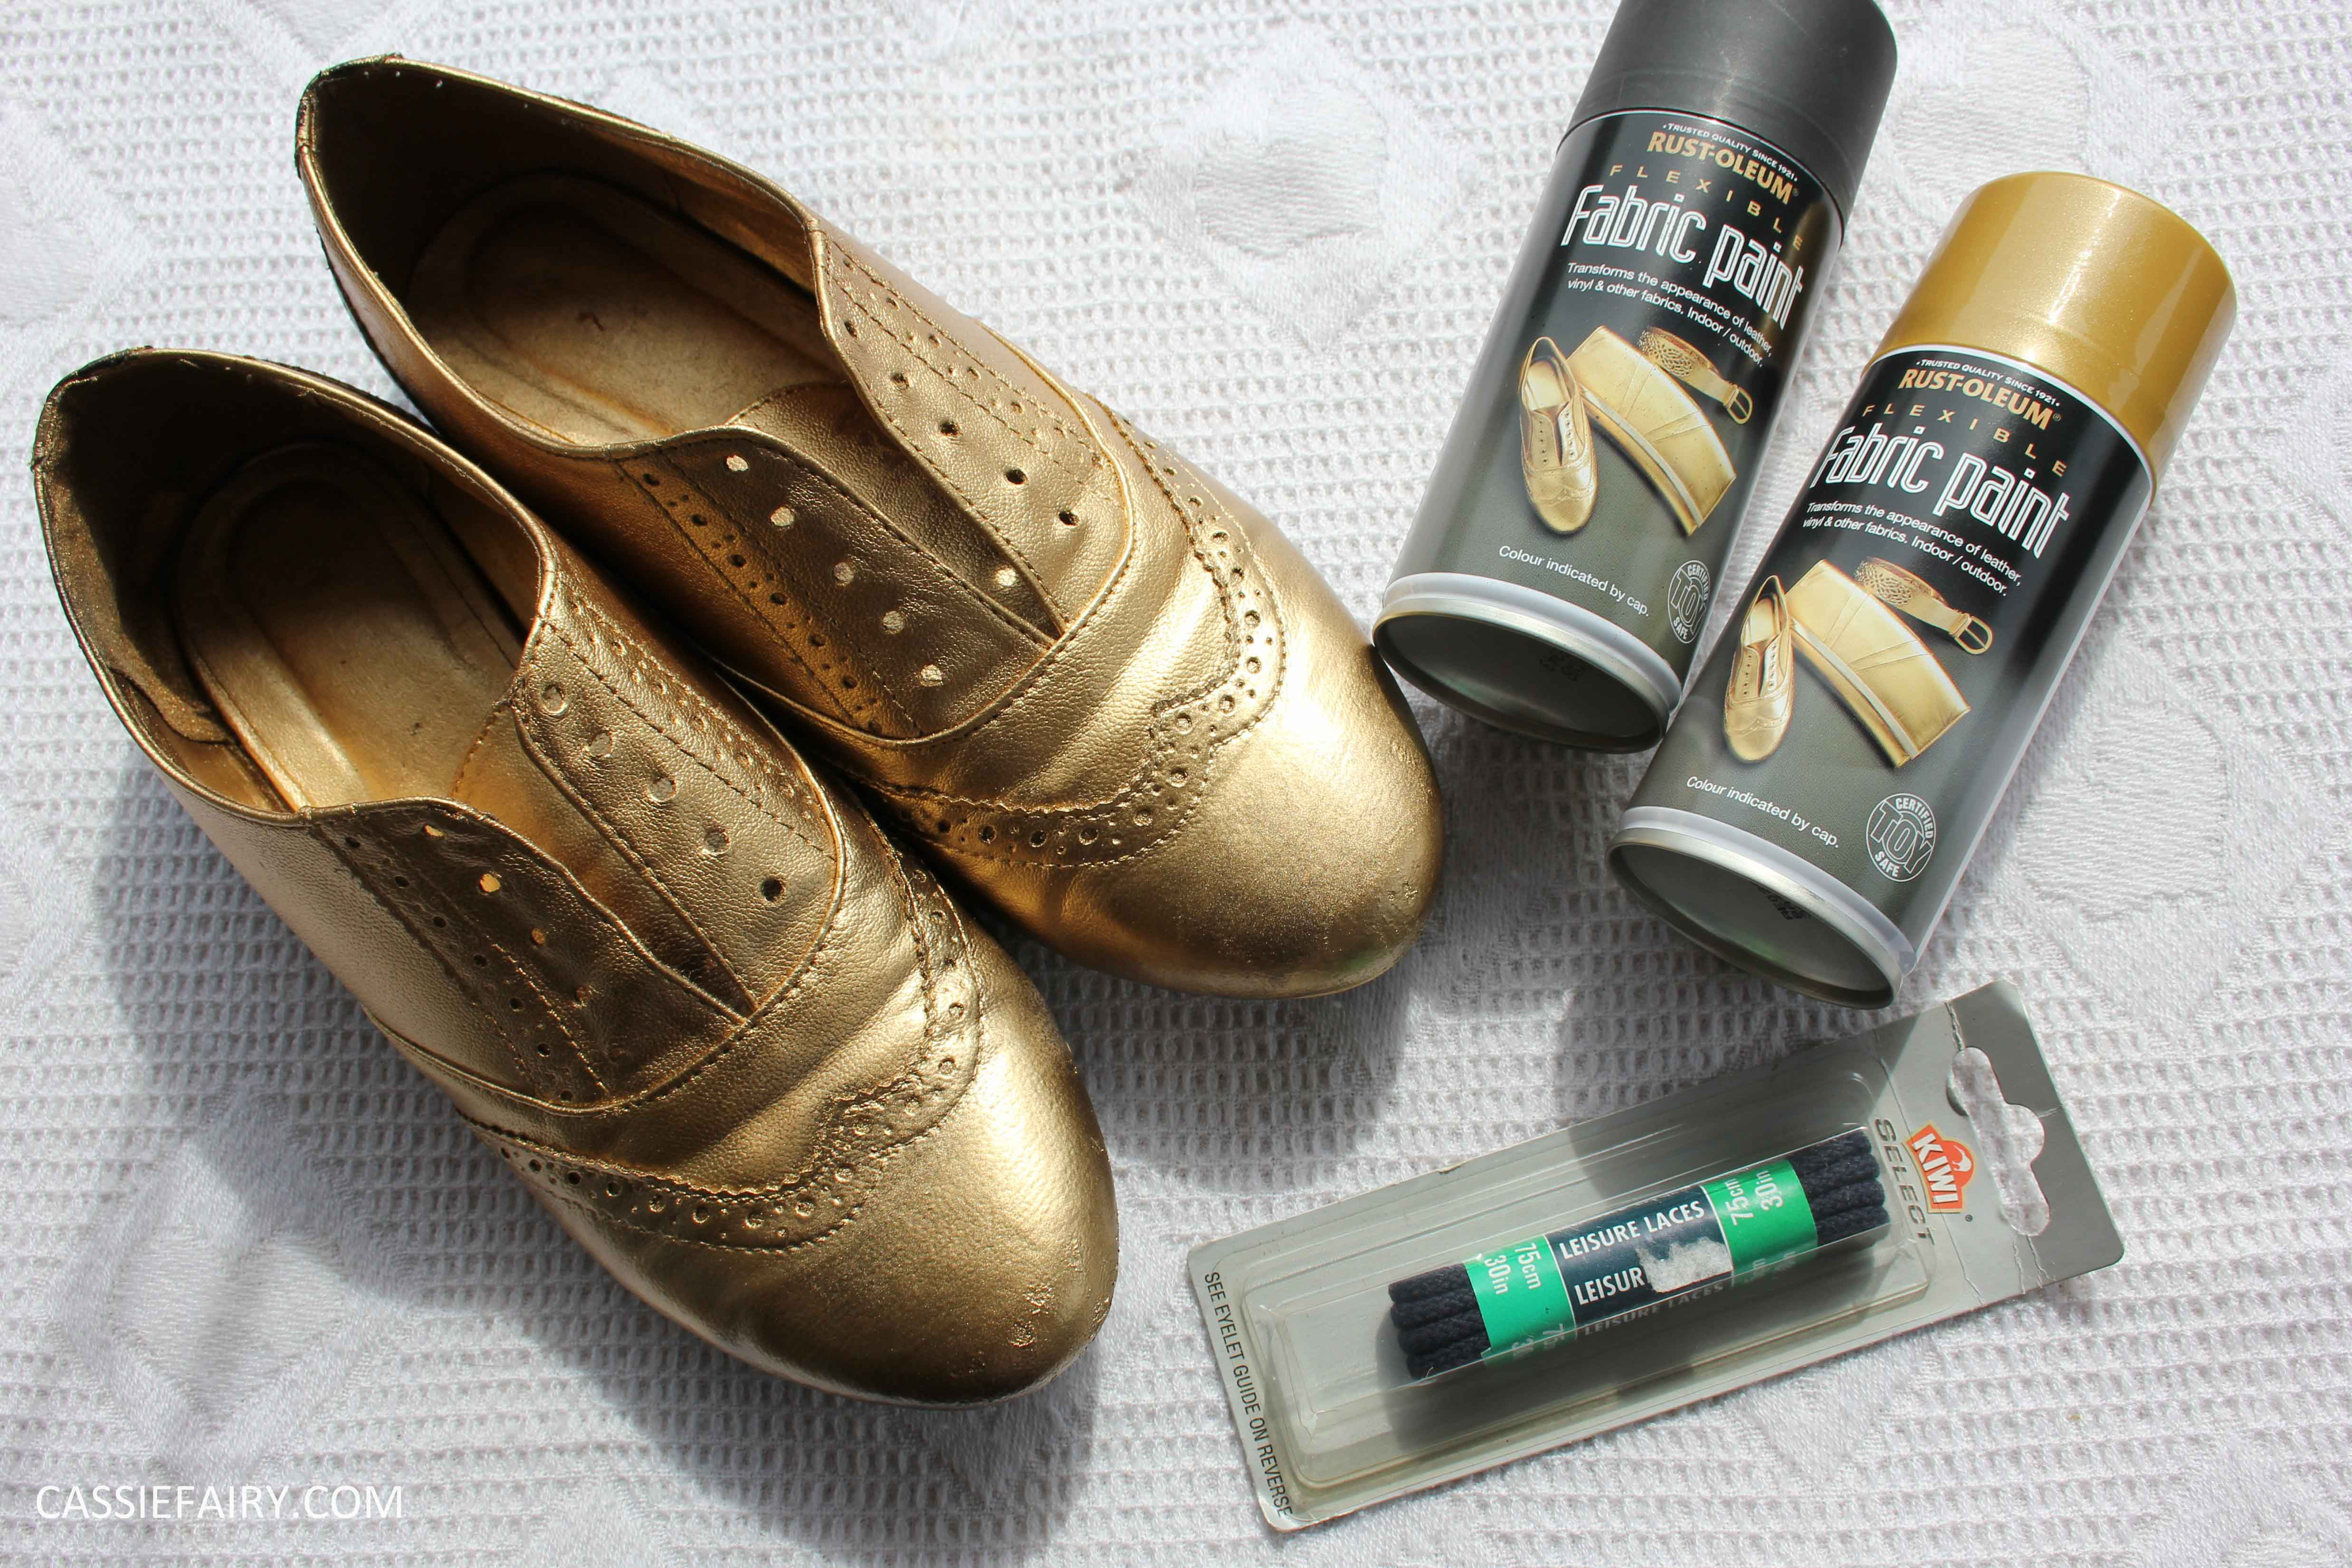 tuesday shoesday diy shoe makeover using spray paint cassiefairy. Black Bedroom Furniture Sets. Home Design Ideas